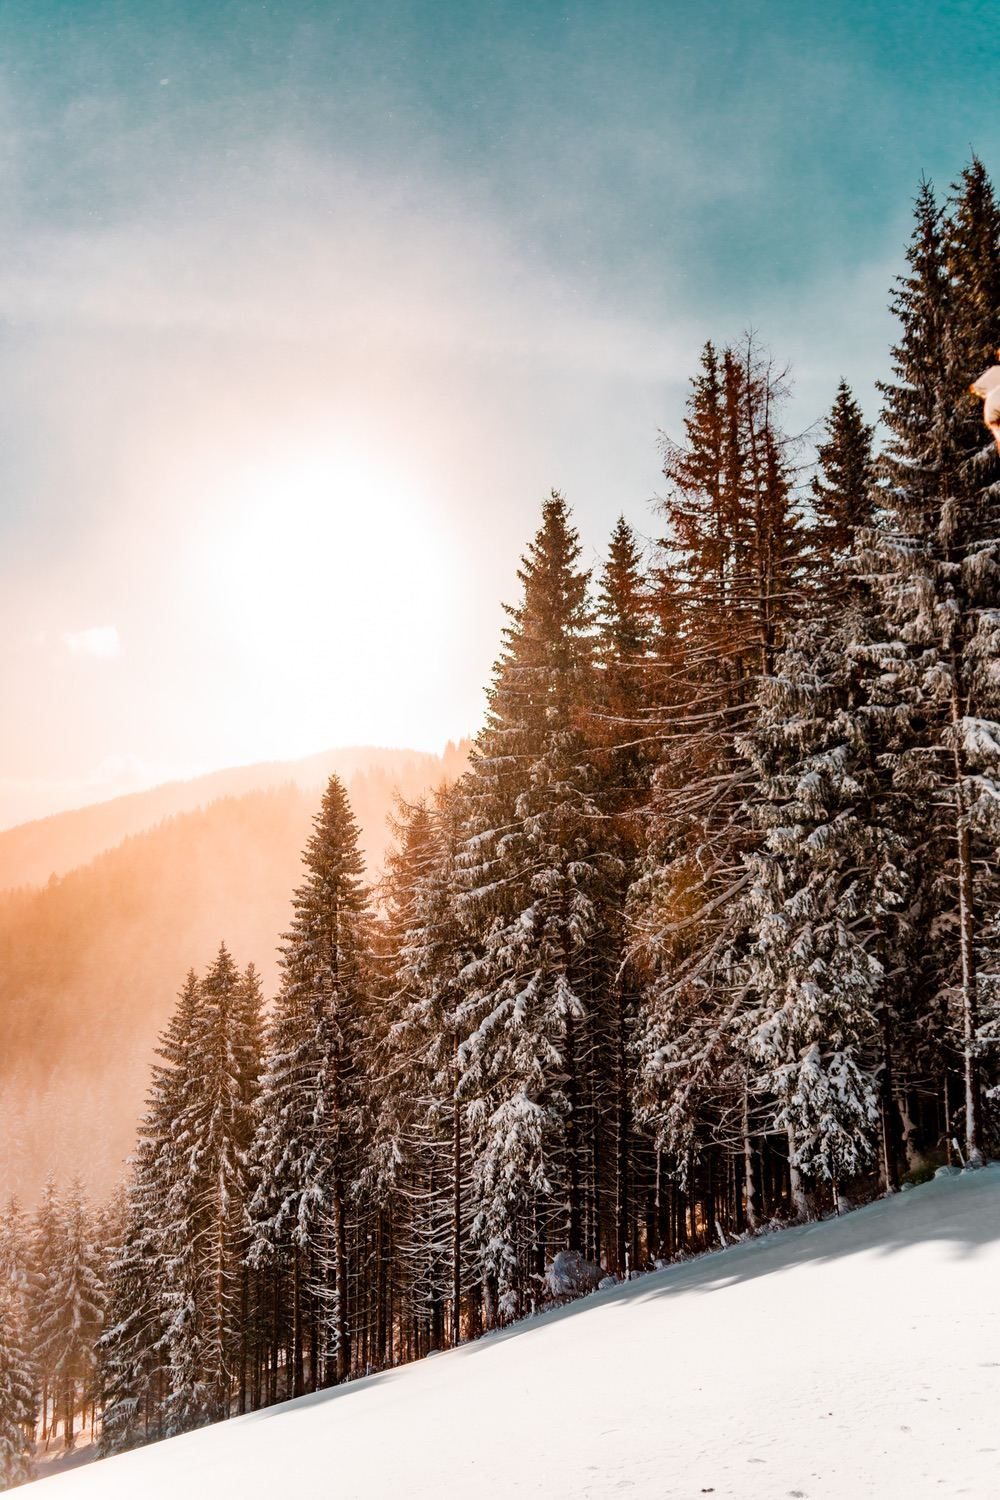 Beautiful nature wallpapers for iPhone - snowy forest wallpaper